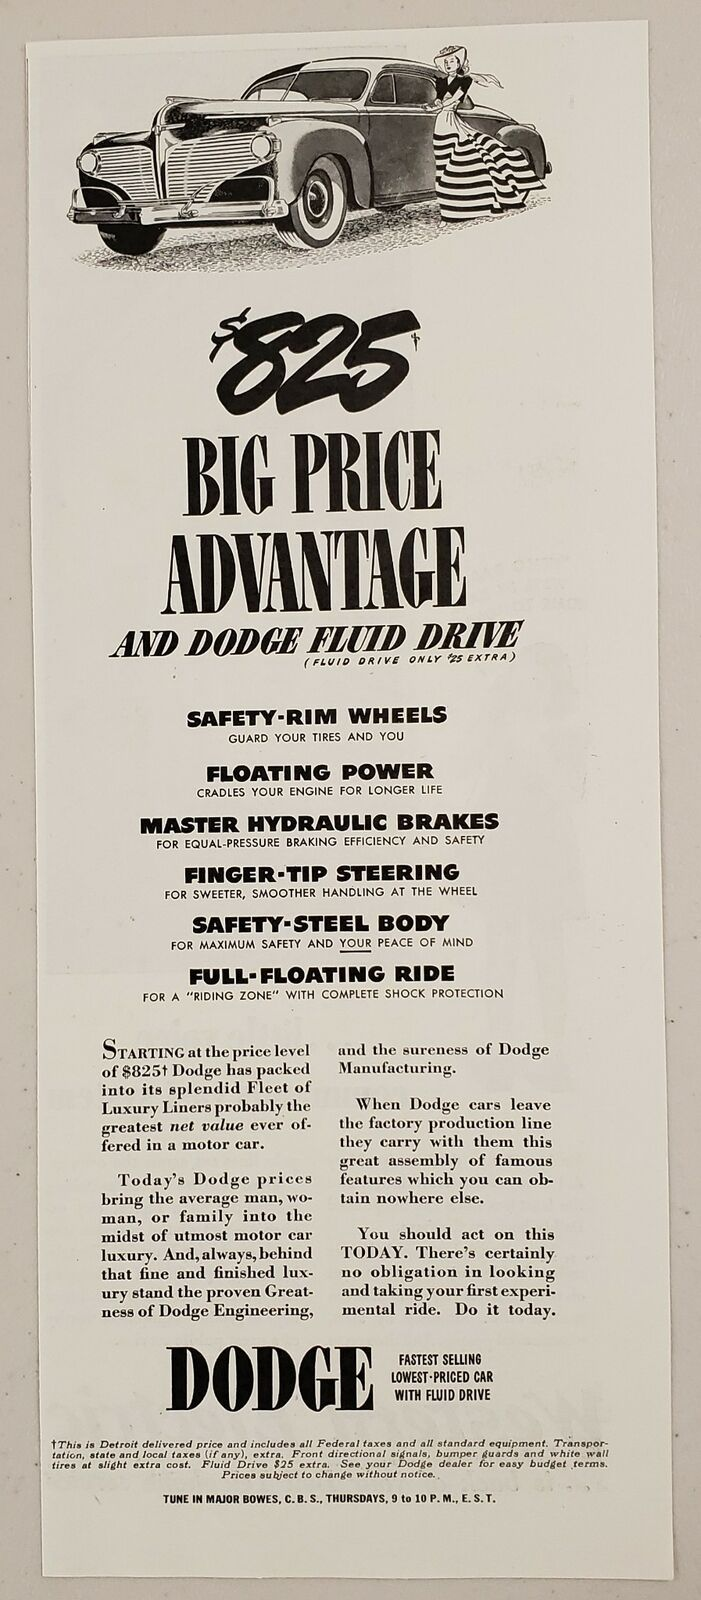 1941 Print Ad Dodge Cars with Fluid Drive Lowest Priced $825 Price Advantage - $11.56